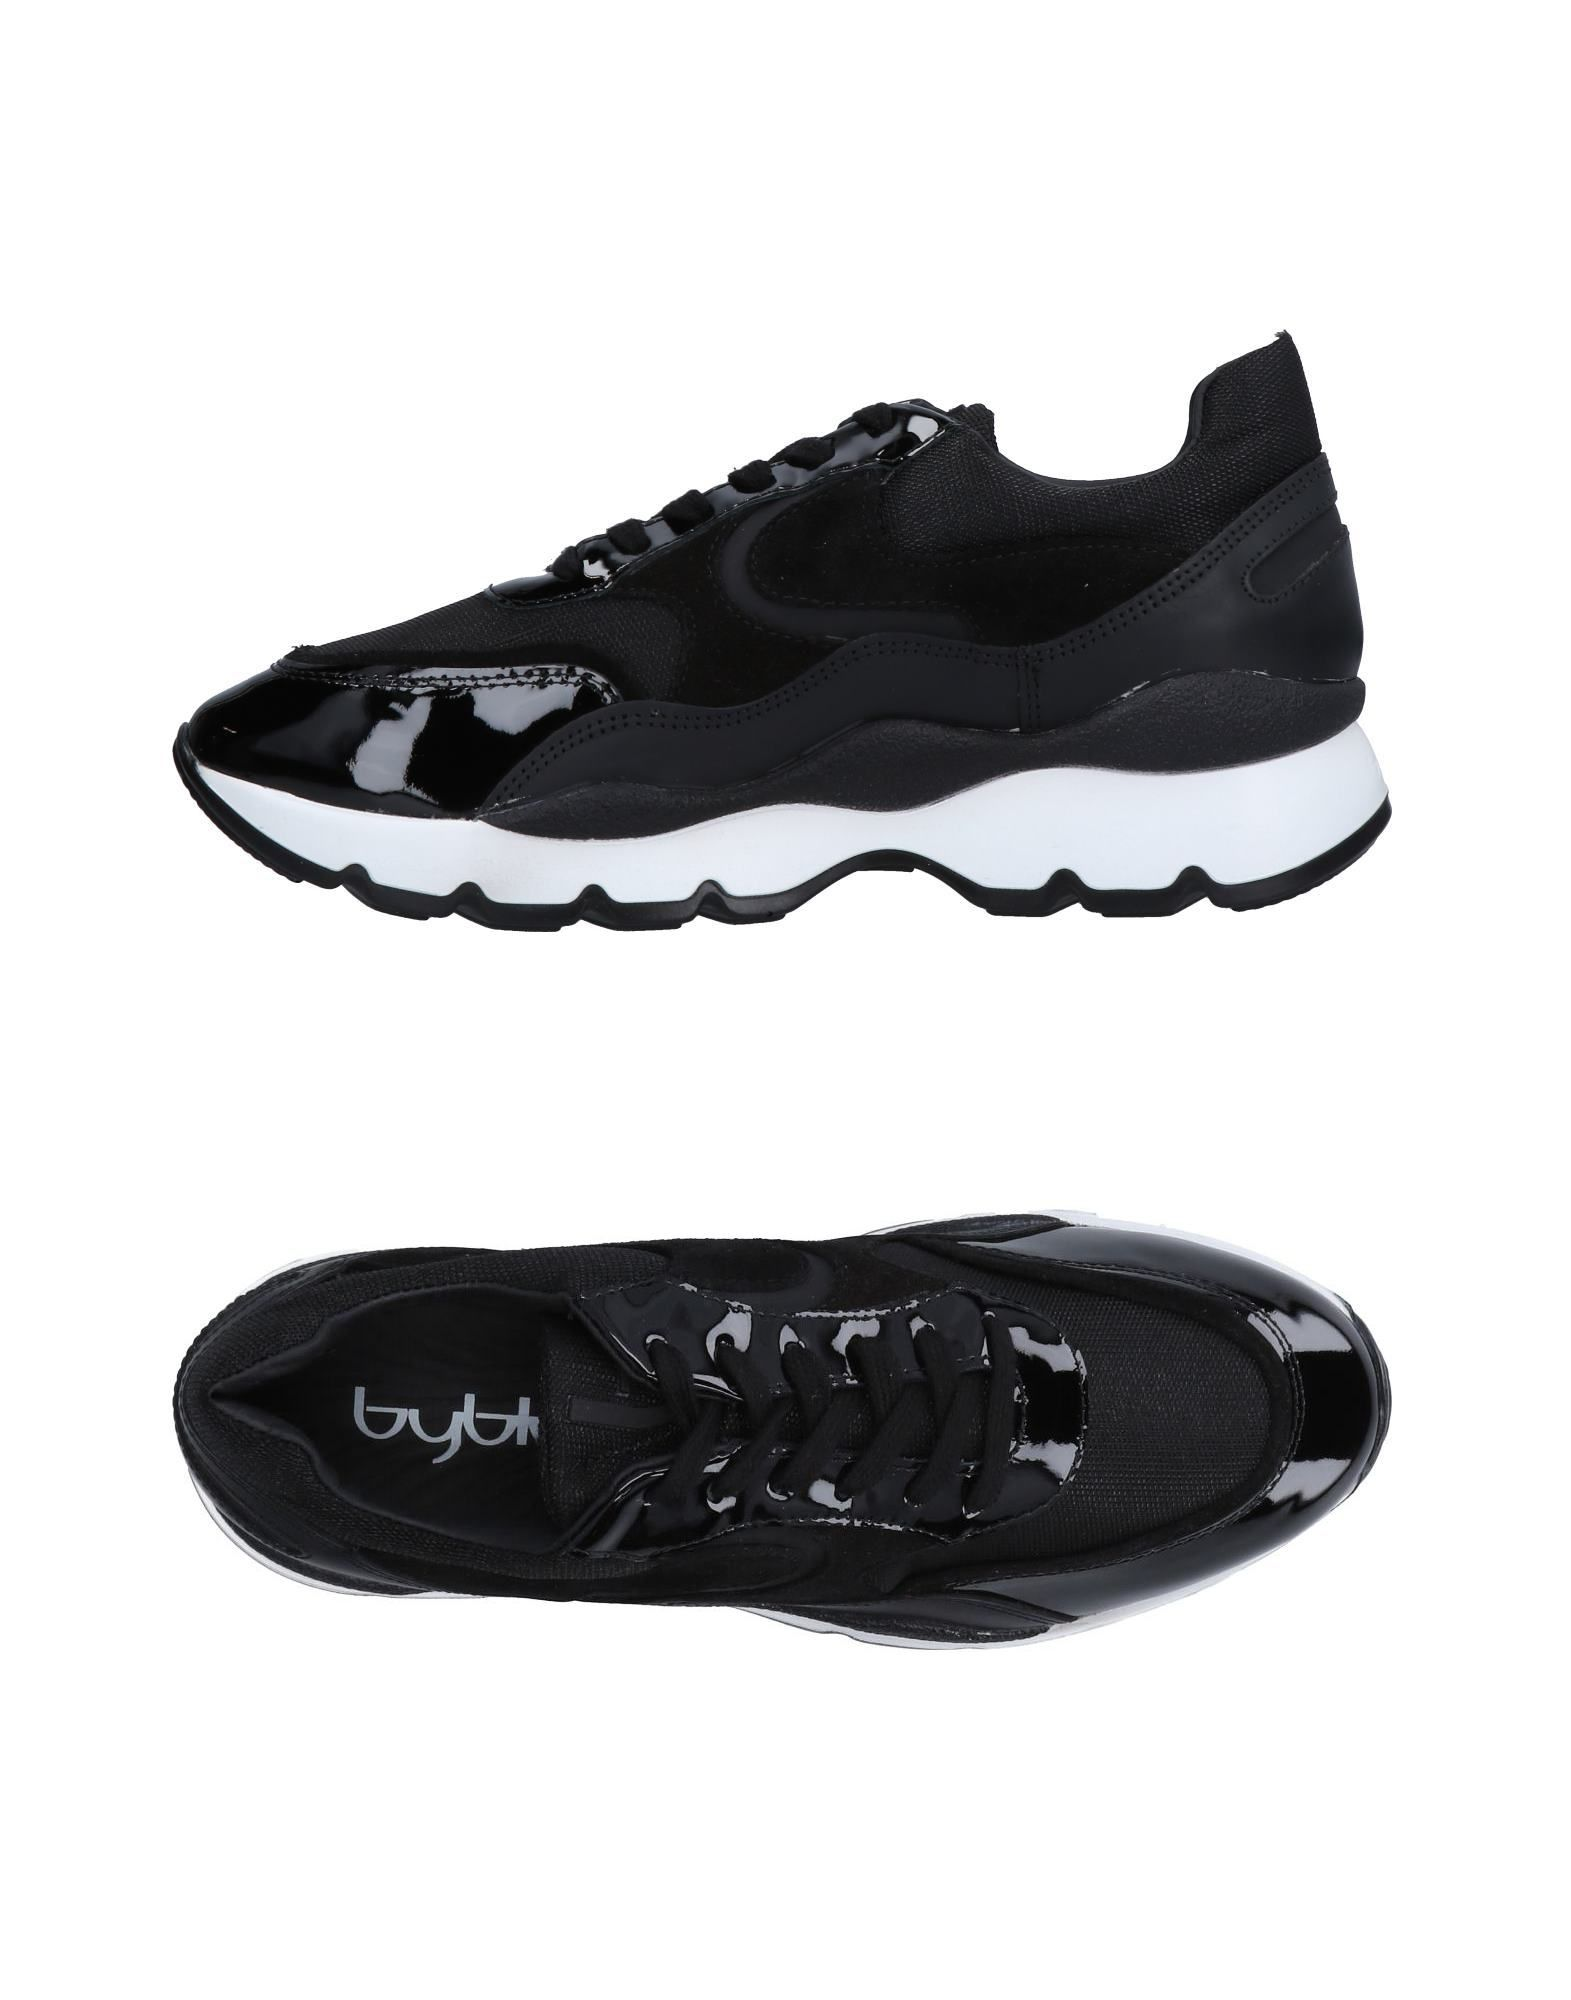 Moda Sneakers Byblos Donna Donna Byblos - 11510981LE 4b358d